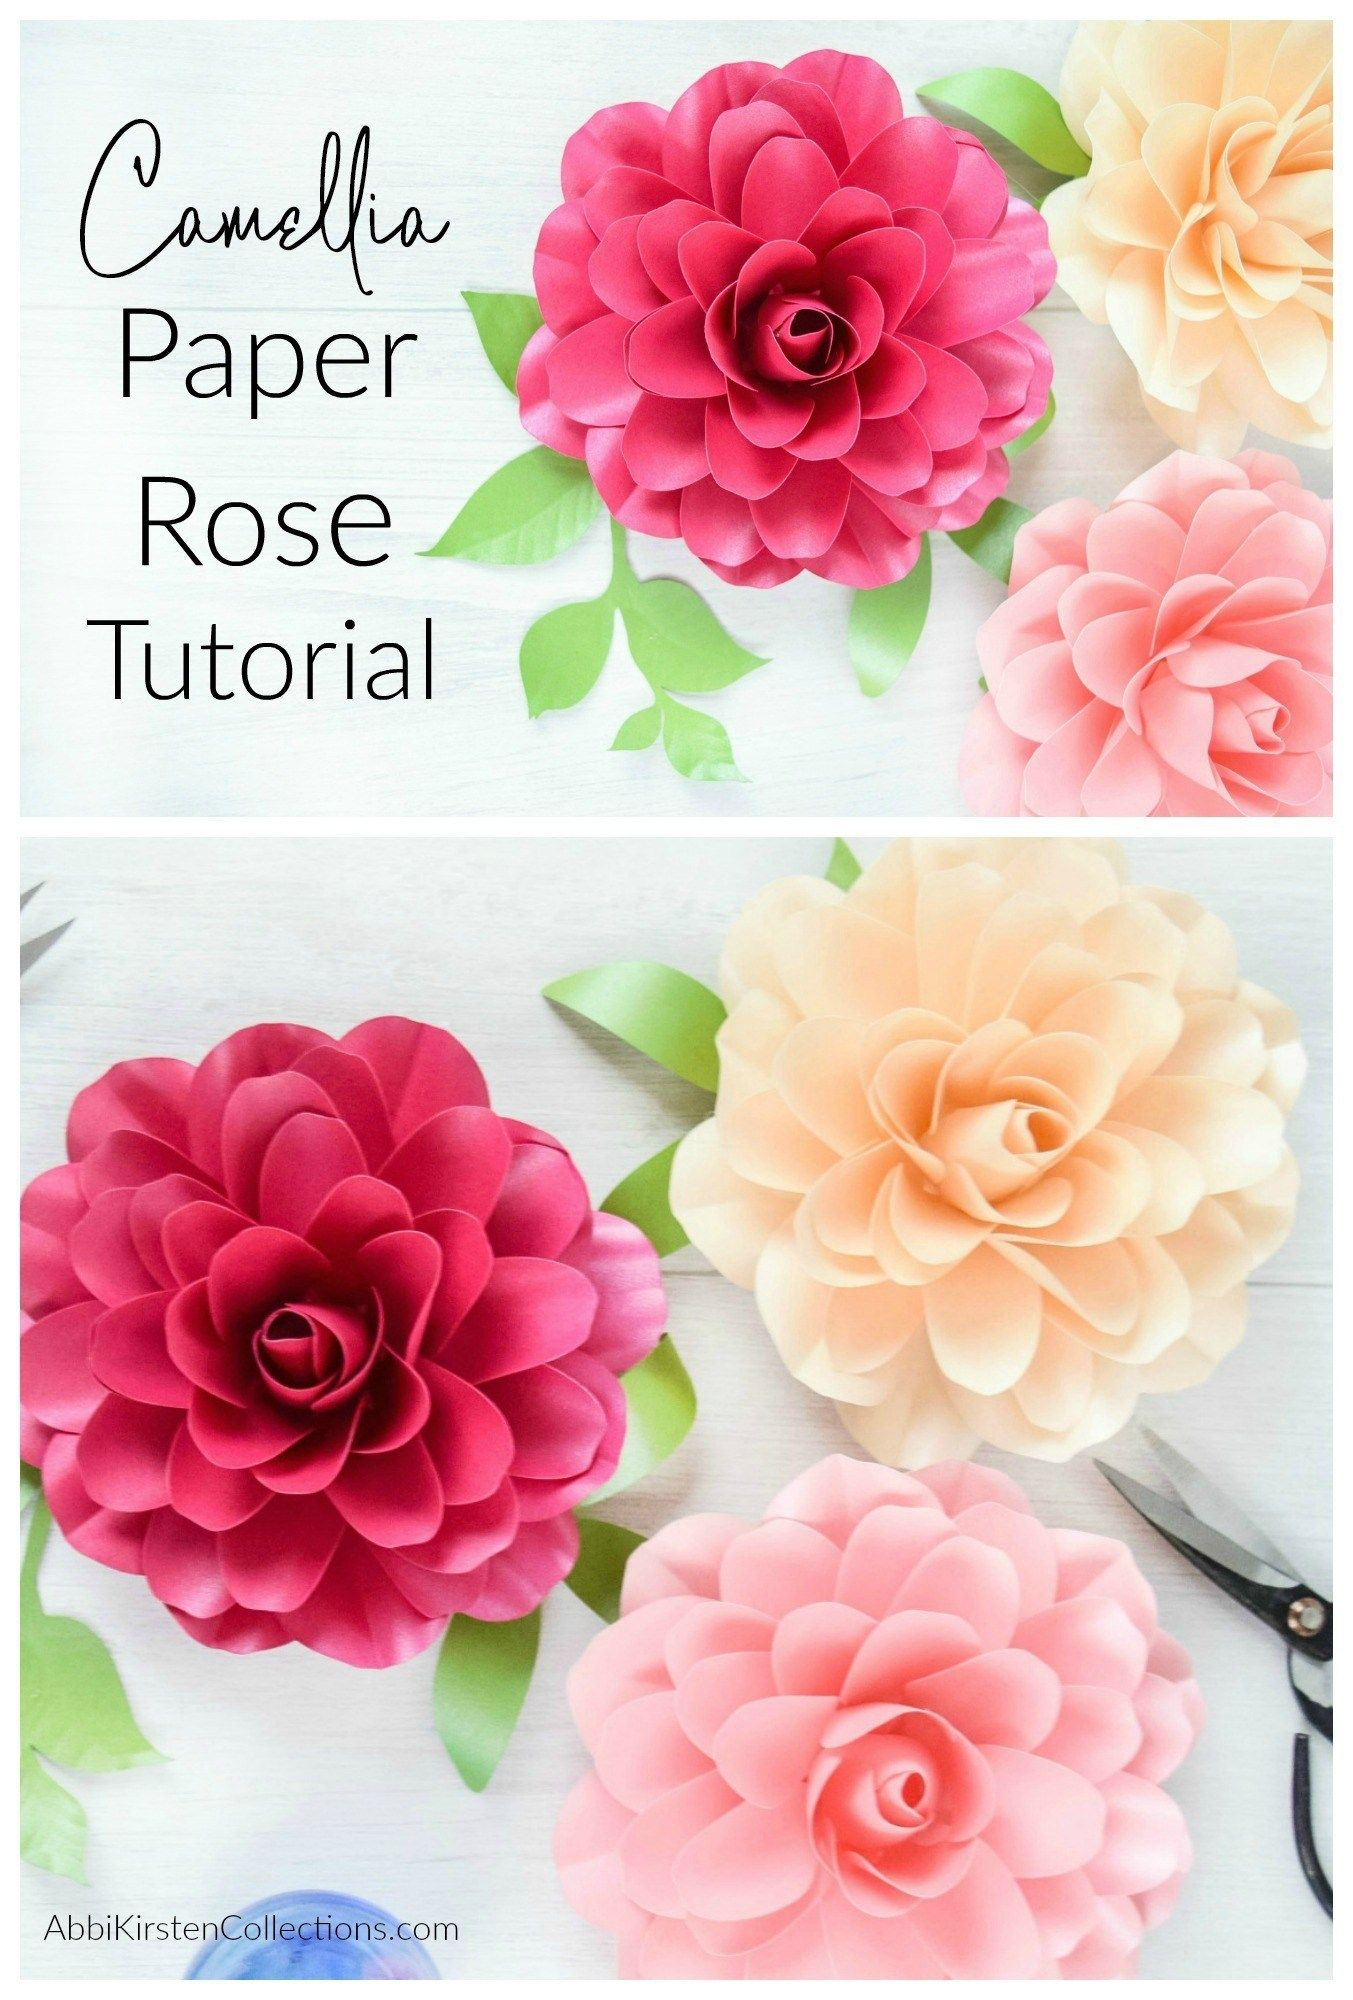 How To Make Small Paper Roses Camellia Rose Template Tutorial With Images Paper Rose Template Paper Roses Paper Flower Template